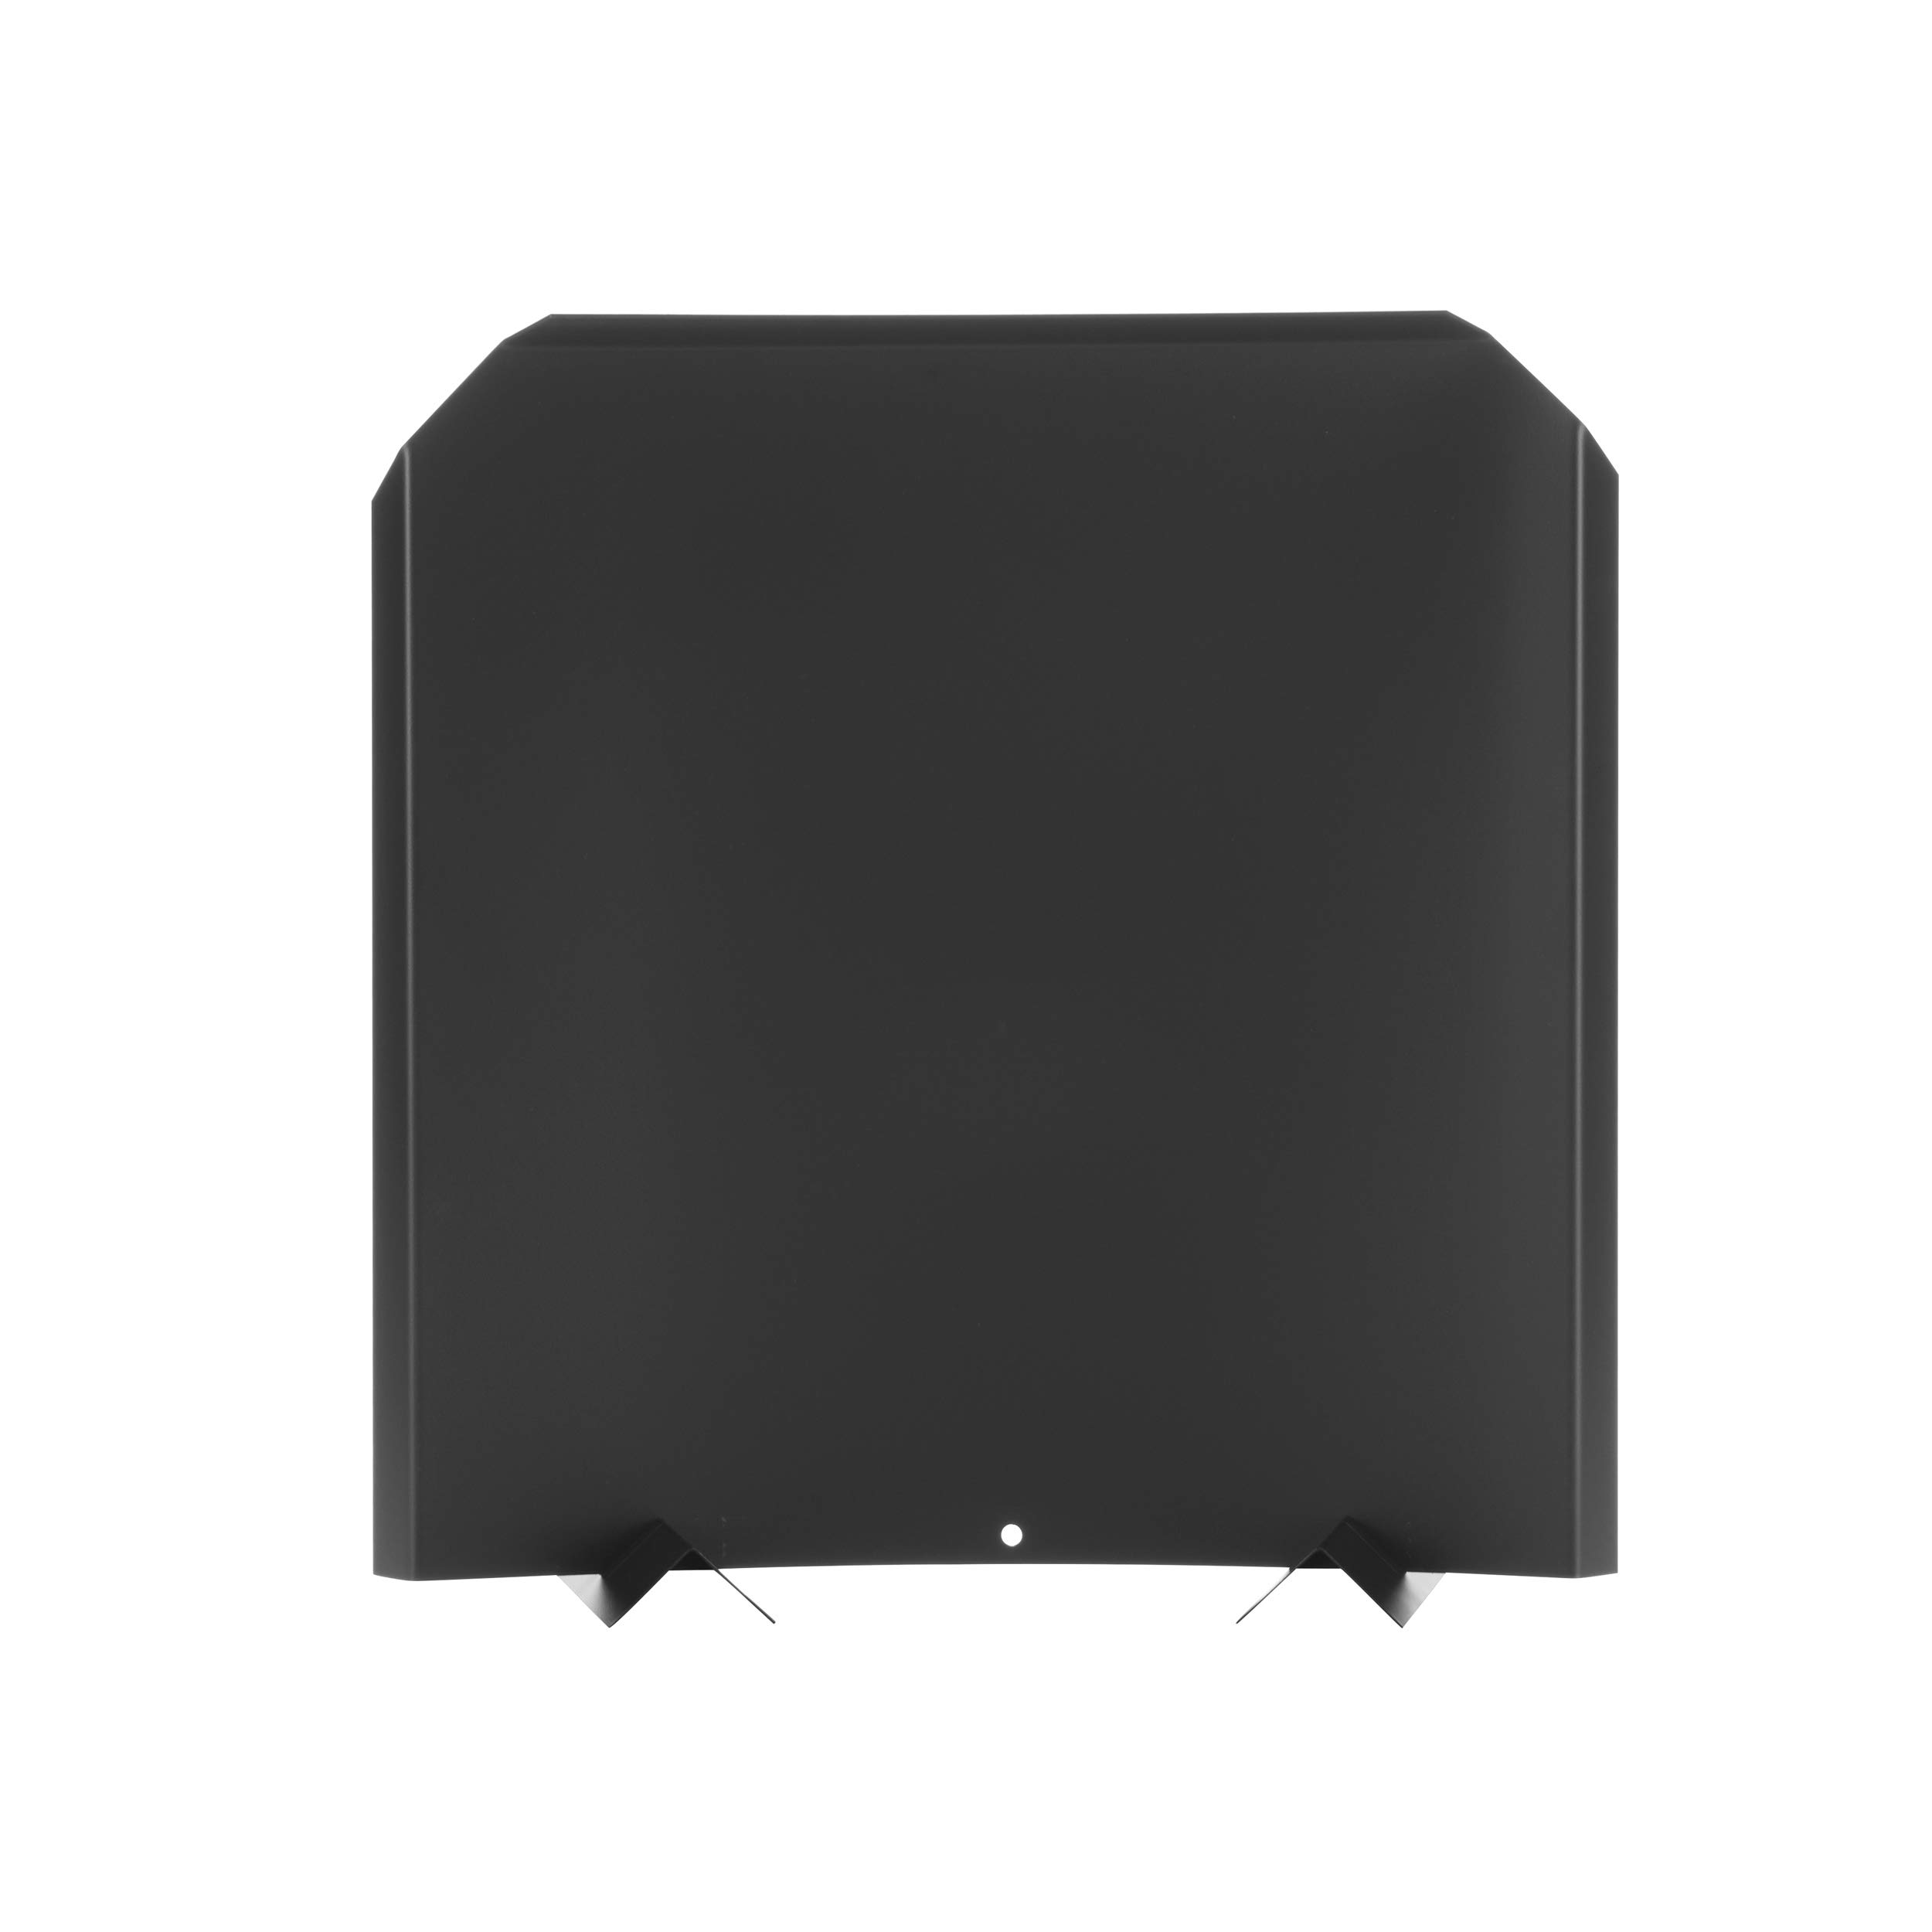 HY-C FB2020 Fireback, Stainless Steel Painted Black, Adjustable Installation, Protects Firebox, 20'' x 20'' by HY-C